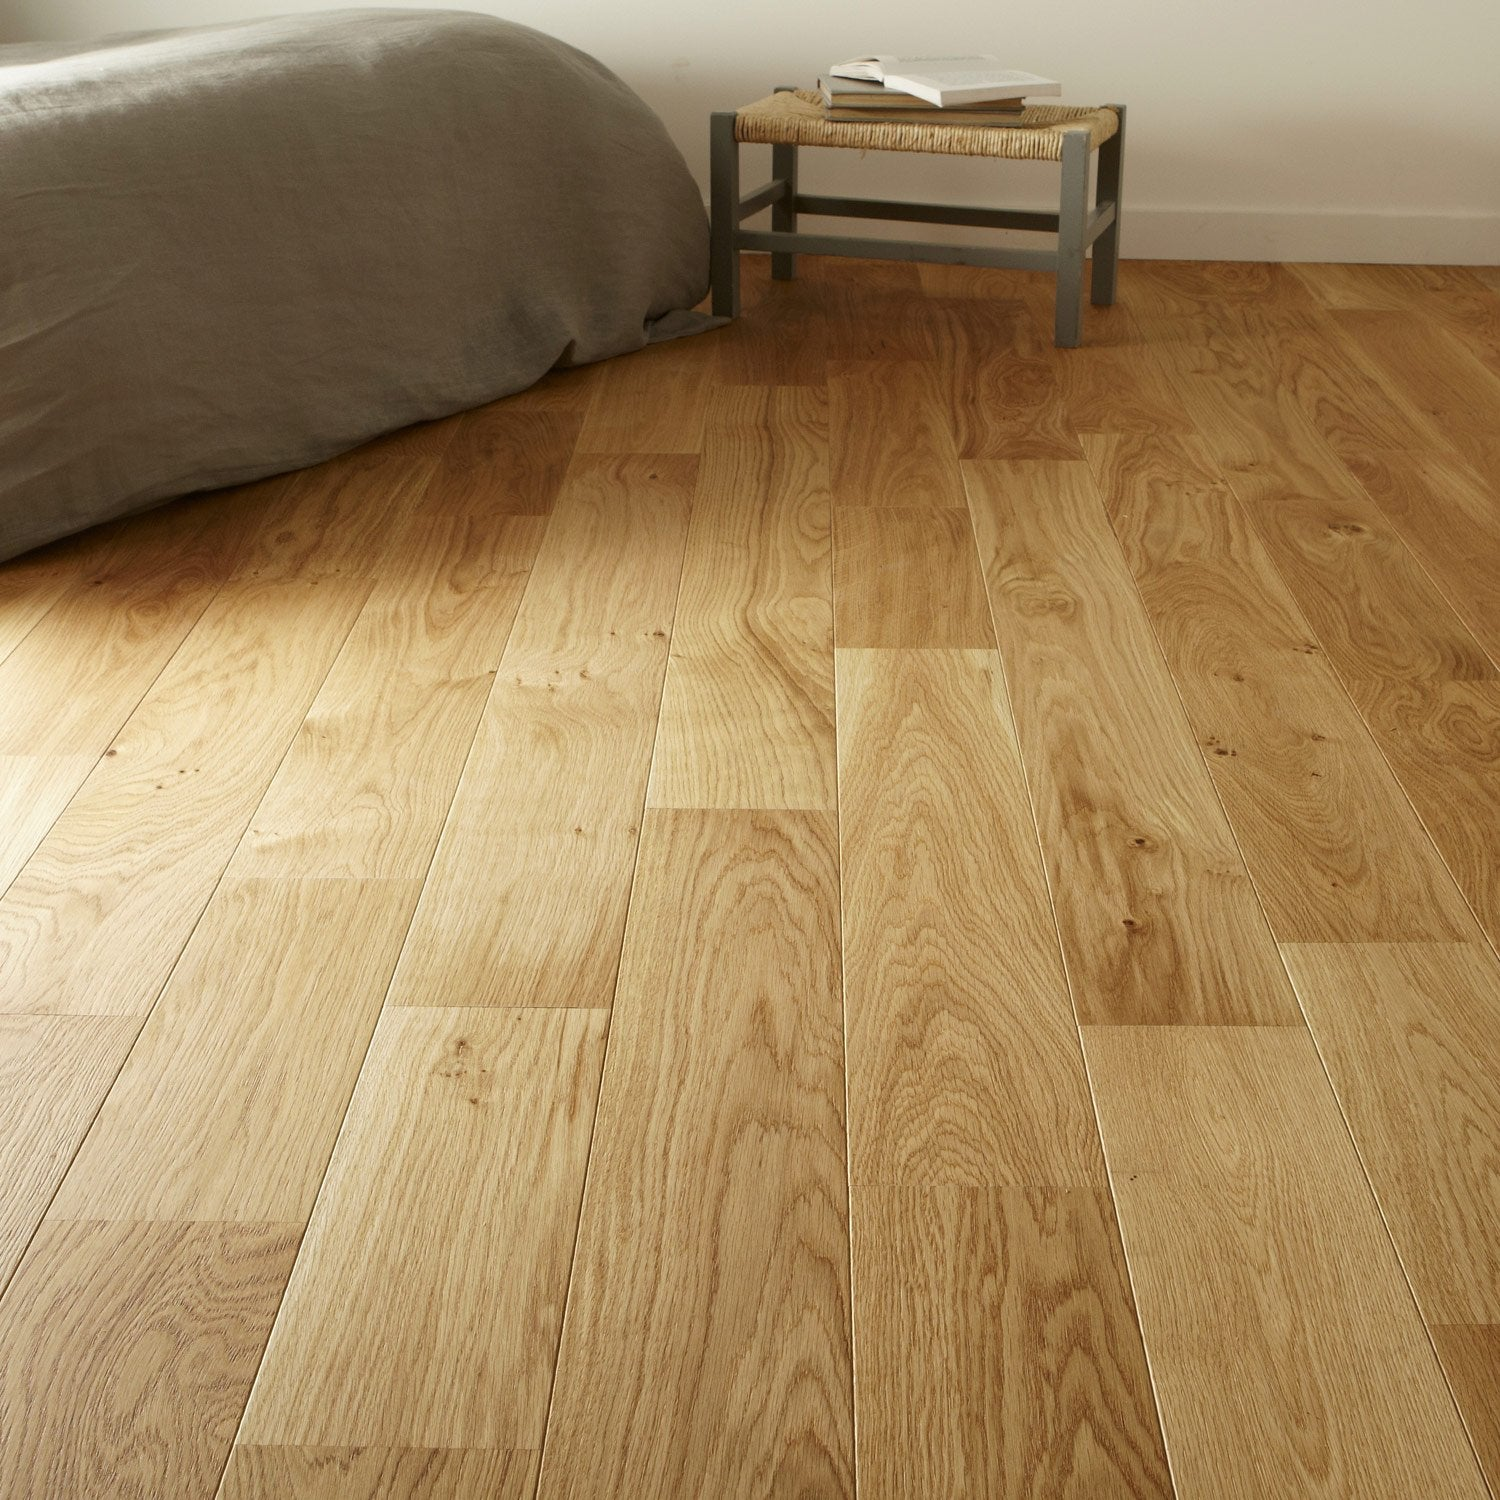 Parquet contrecoll ch ne blond vitrifi l broceliande for Video pose de parquet flottant a clipser